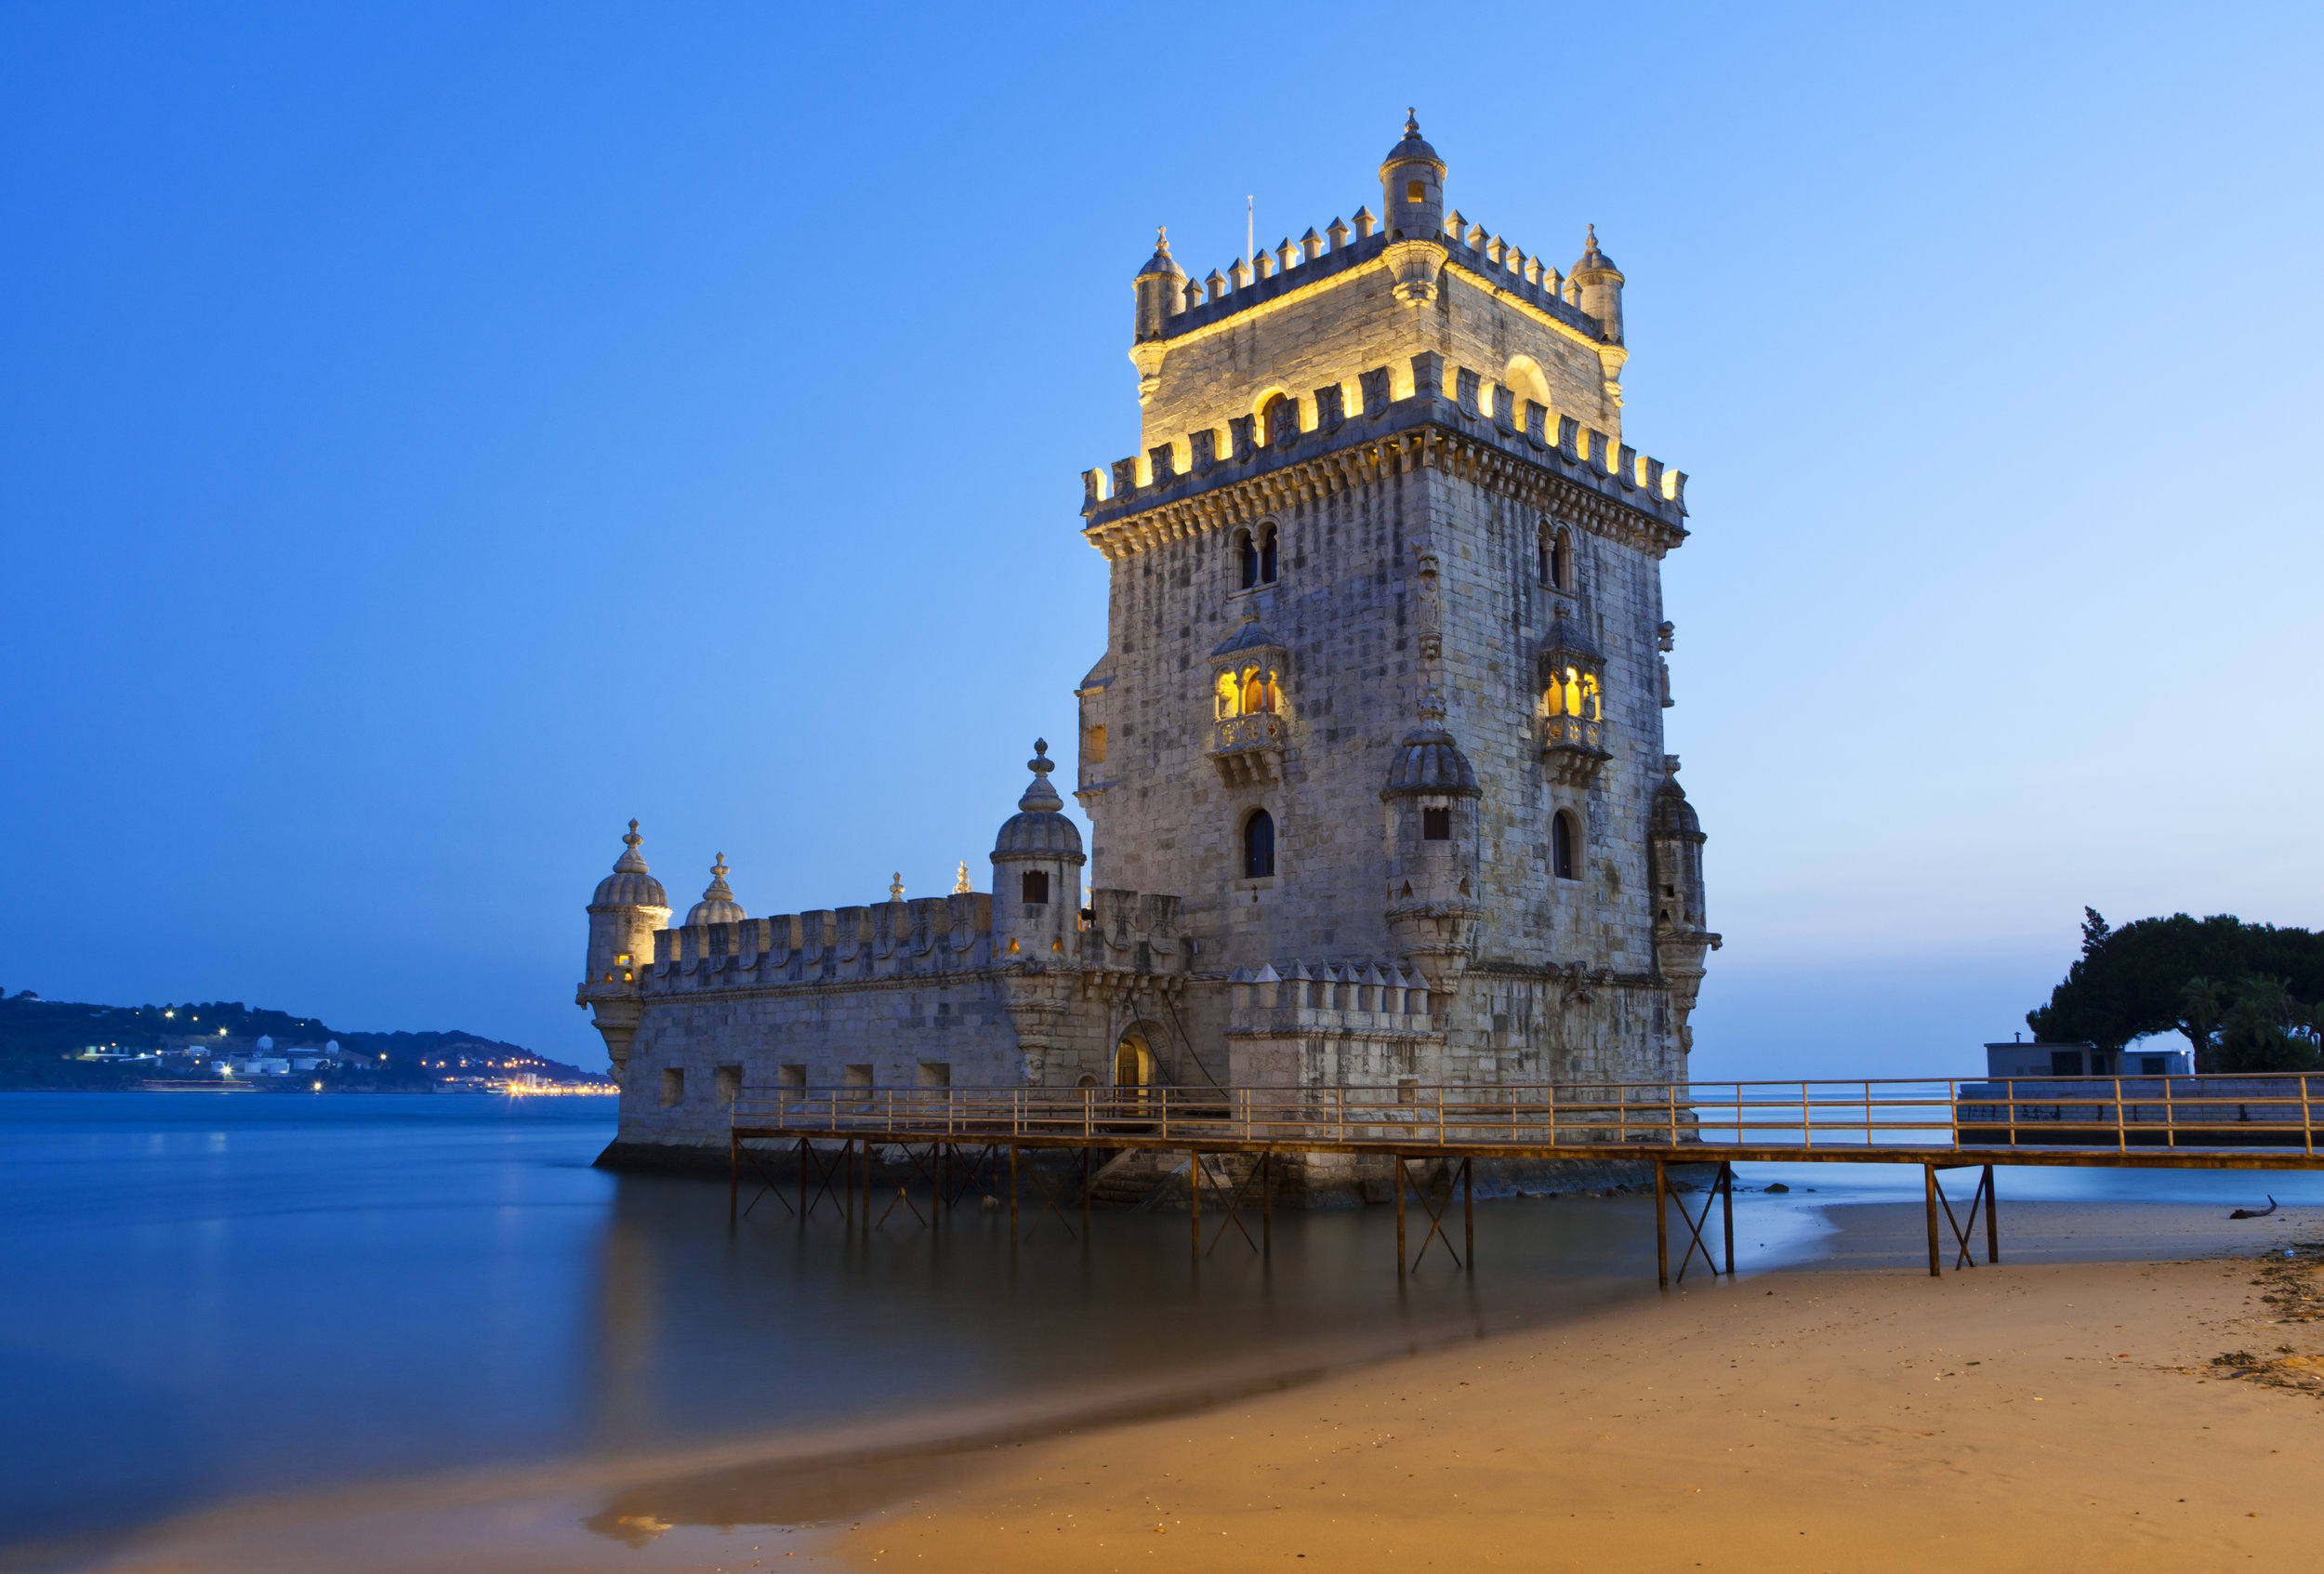 bigstock-The-famous-Tower-of-Belem-at-L-48248372.jpg